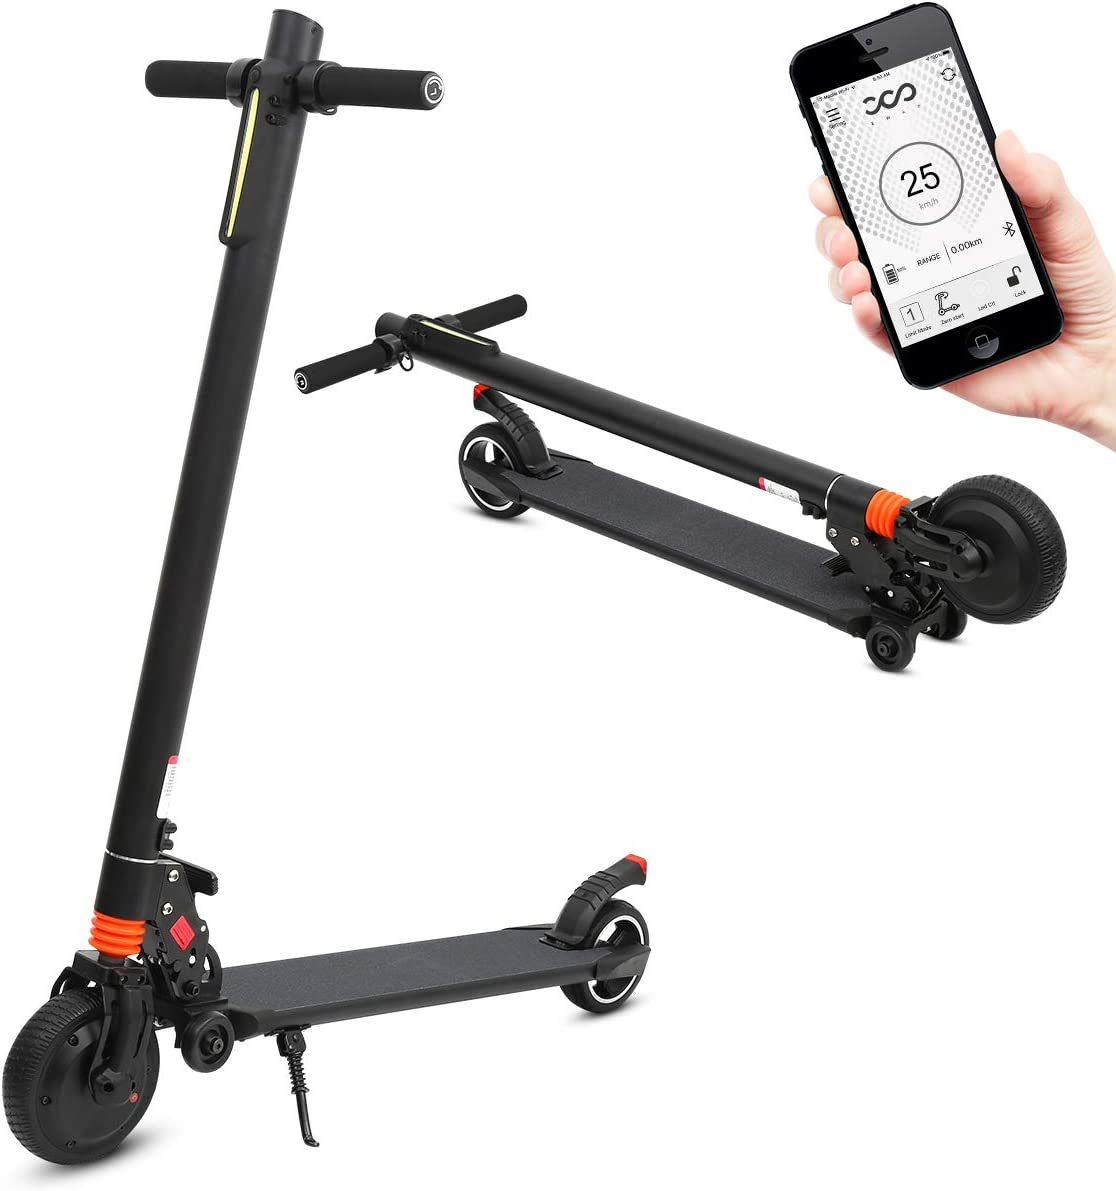 Portable Electric Scooter Rechargable Folding Scooter for Teenagers and Adults with Headlight and Hand Brake Max Speed up to 14mph, Carry 264lbs Max 16 Mile Range per Charge